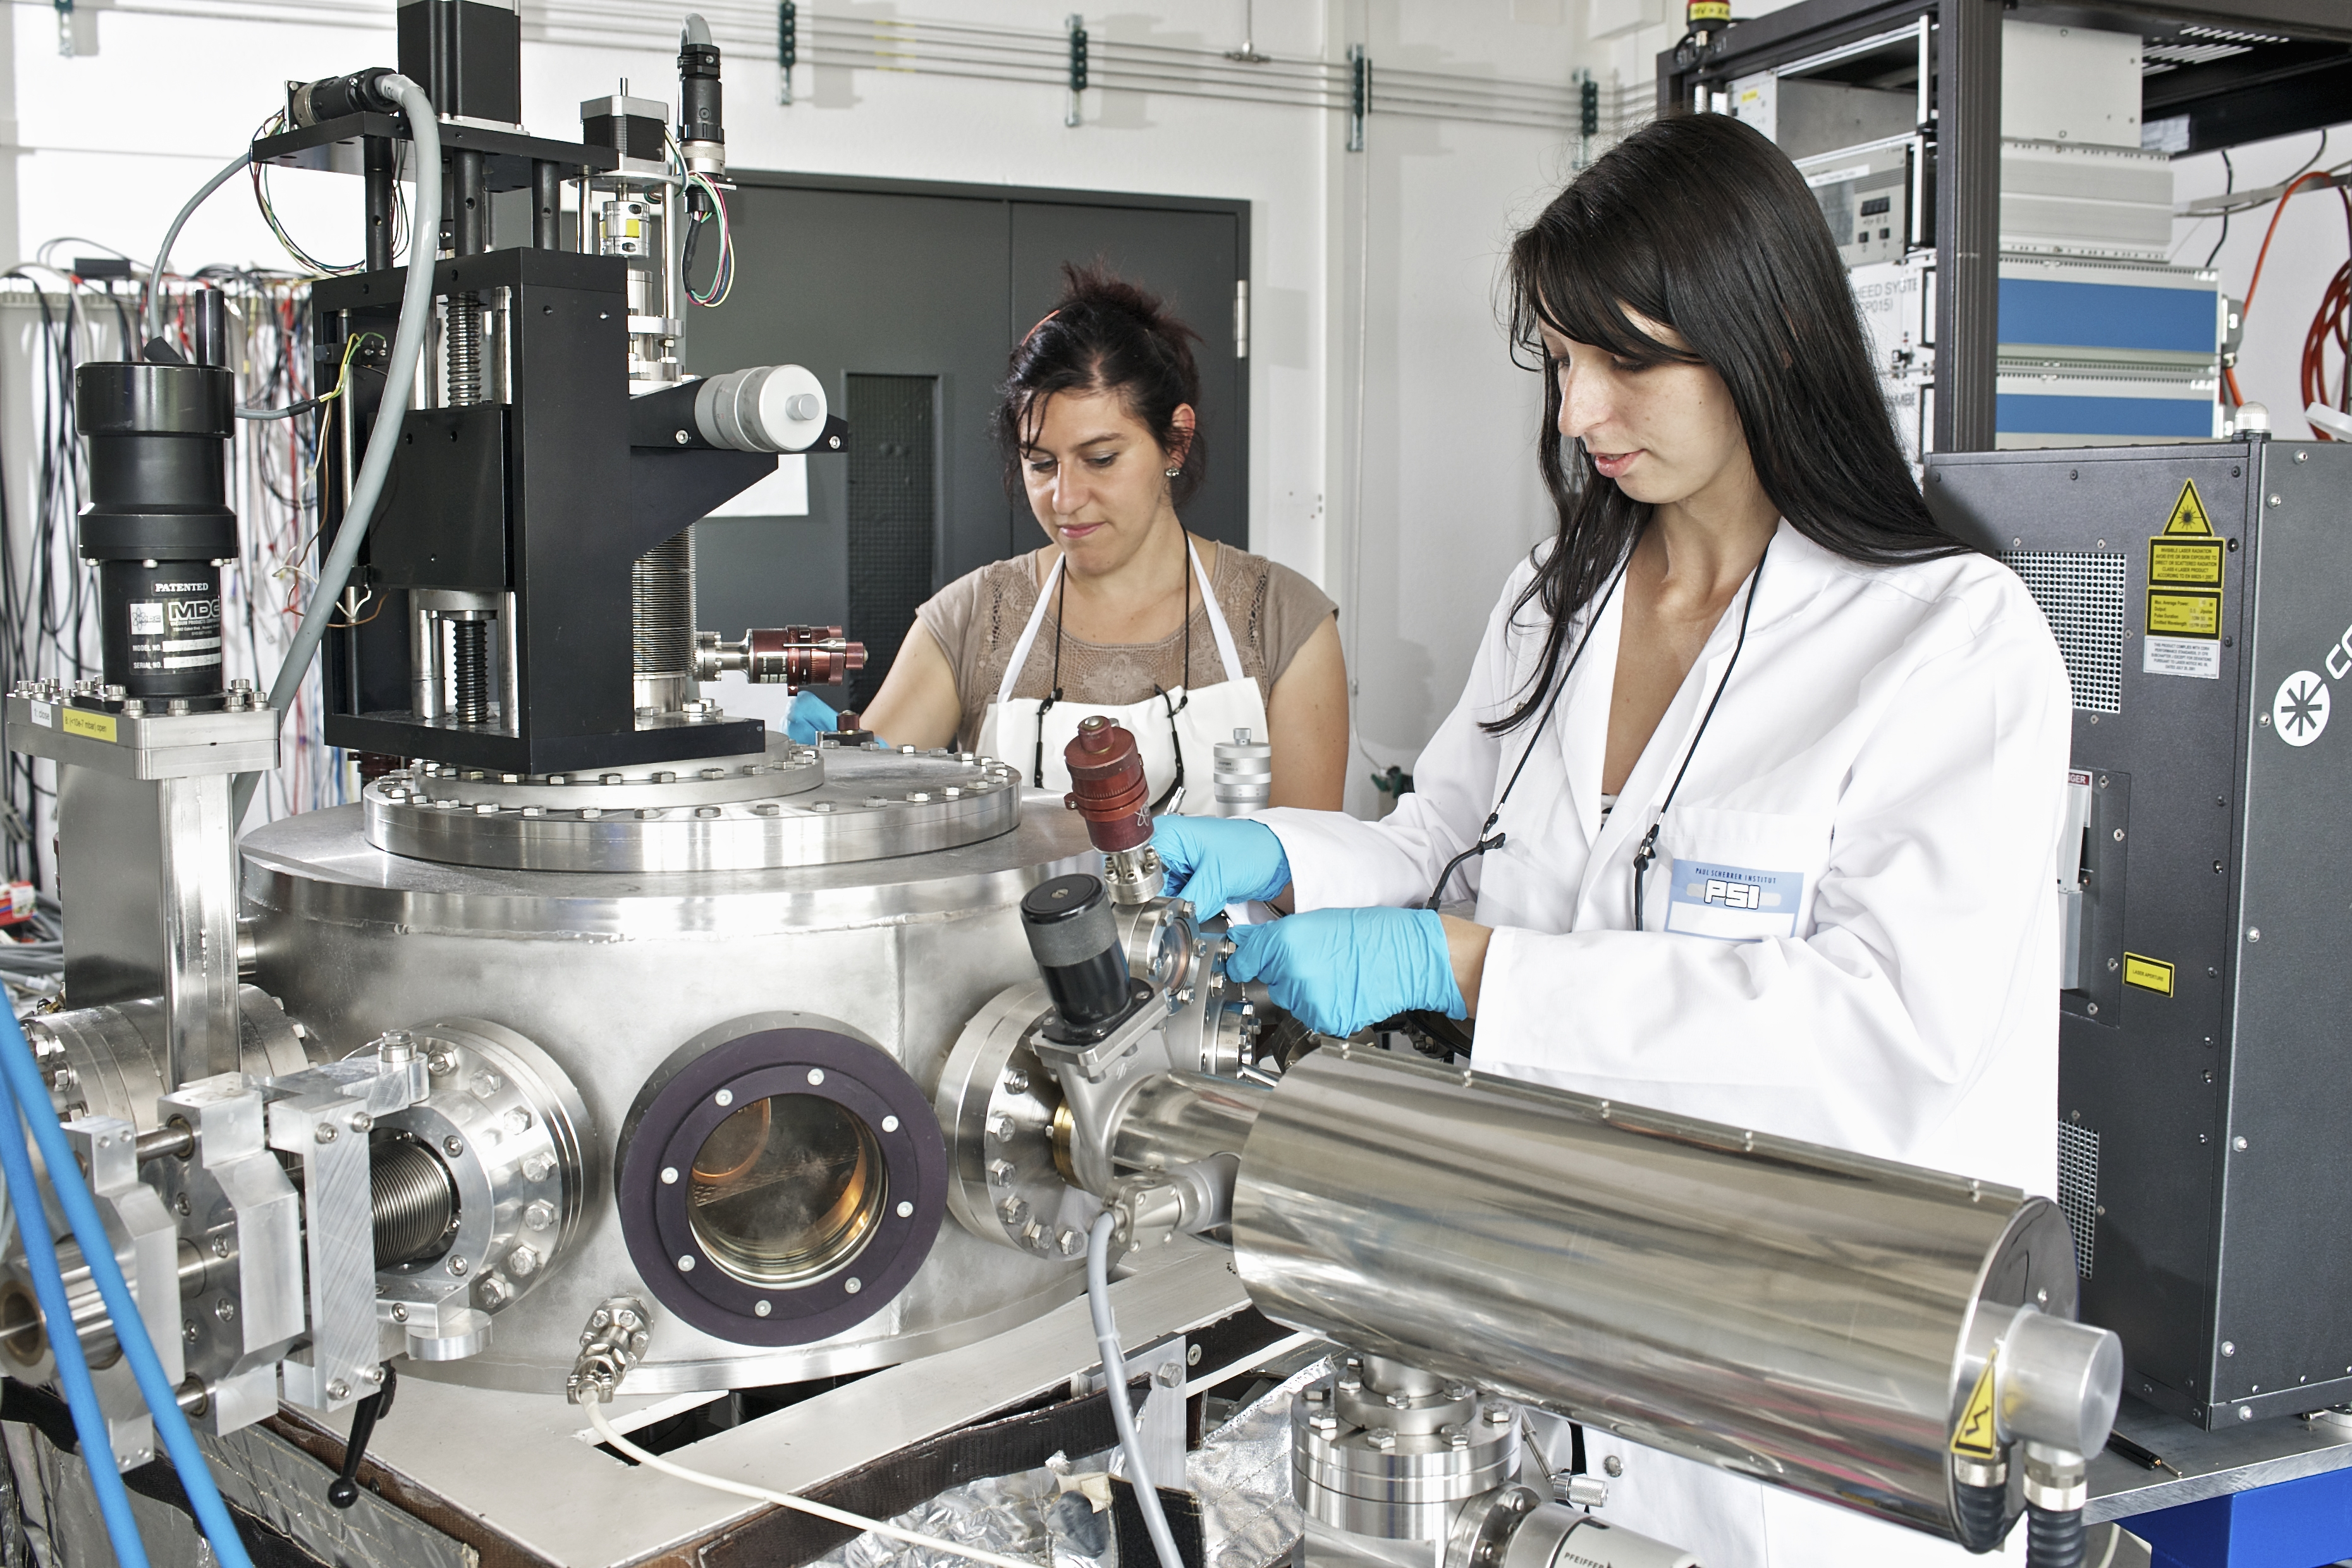 The researchers Claudia Cancellieri (left) and Mathilde Reinle-Schmitt at an apparatus that produces thin layers of different materials with the aid of a laser (Paul Scherrer Institute/M. Fischer)